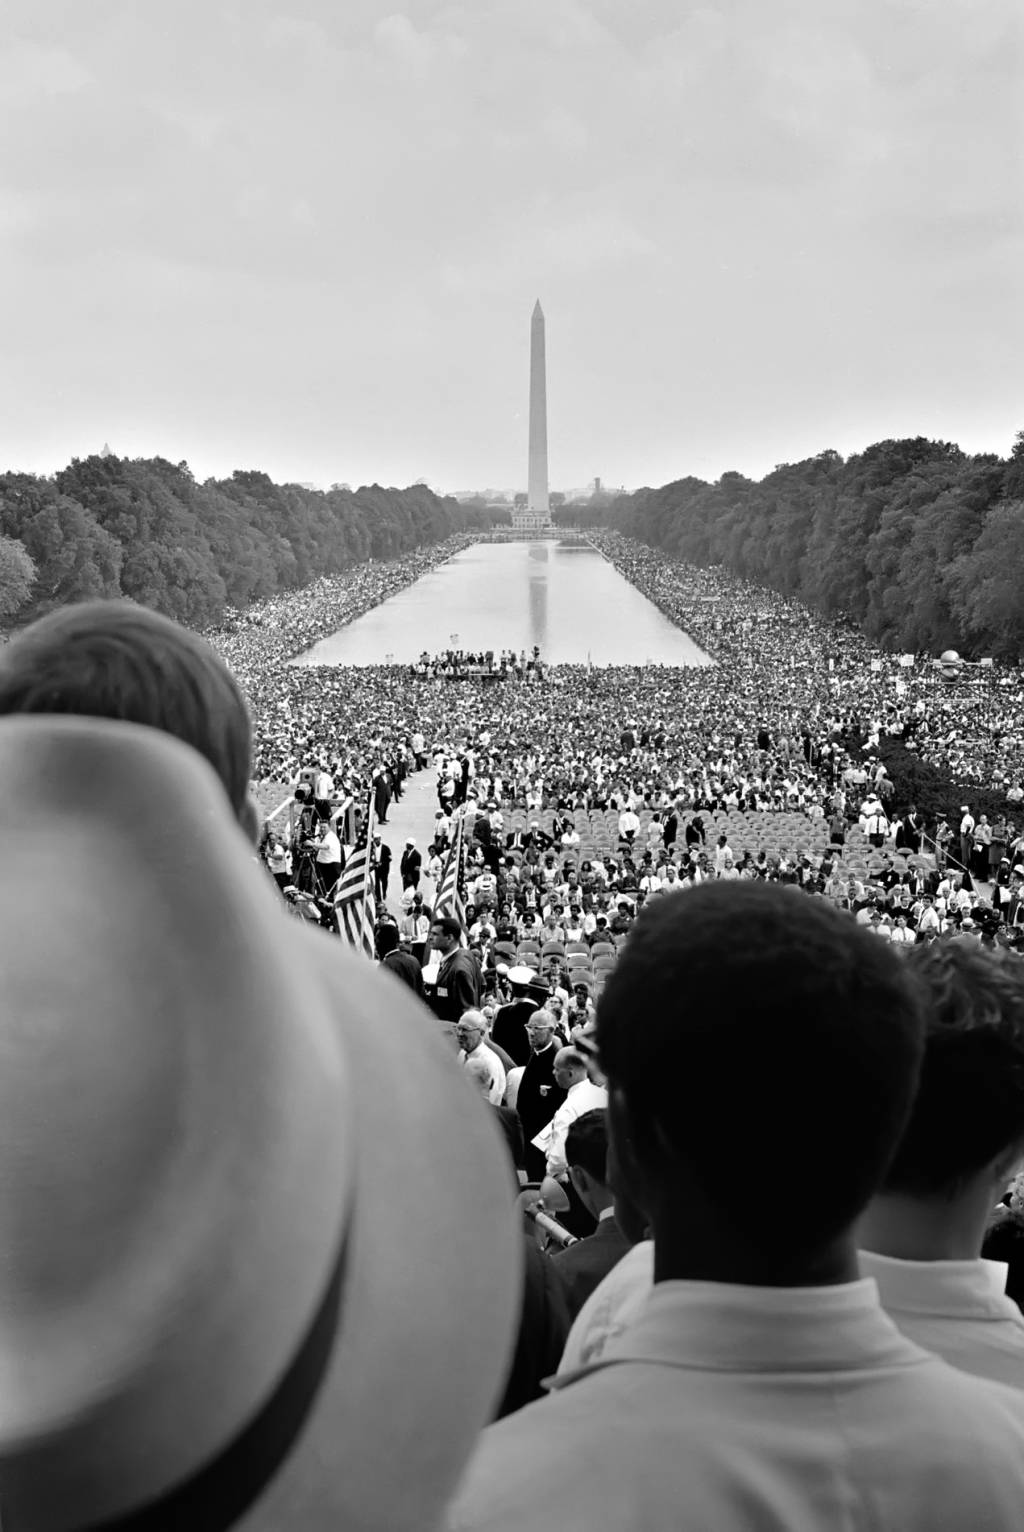 an analysis of ldquo the ways of meeting oppression rdquo martin luther crowds surrounding the reflecting pool during the 1963 on washington